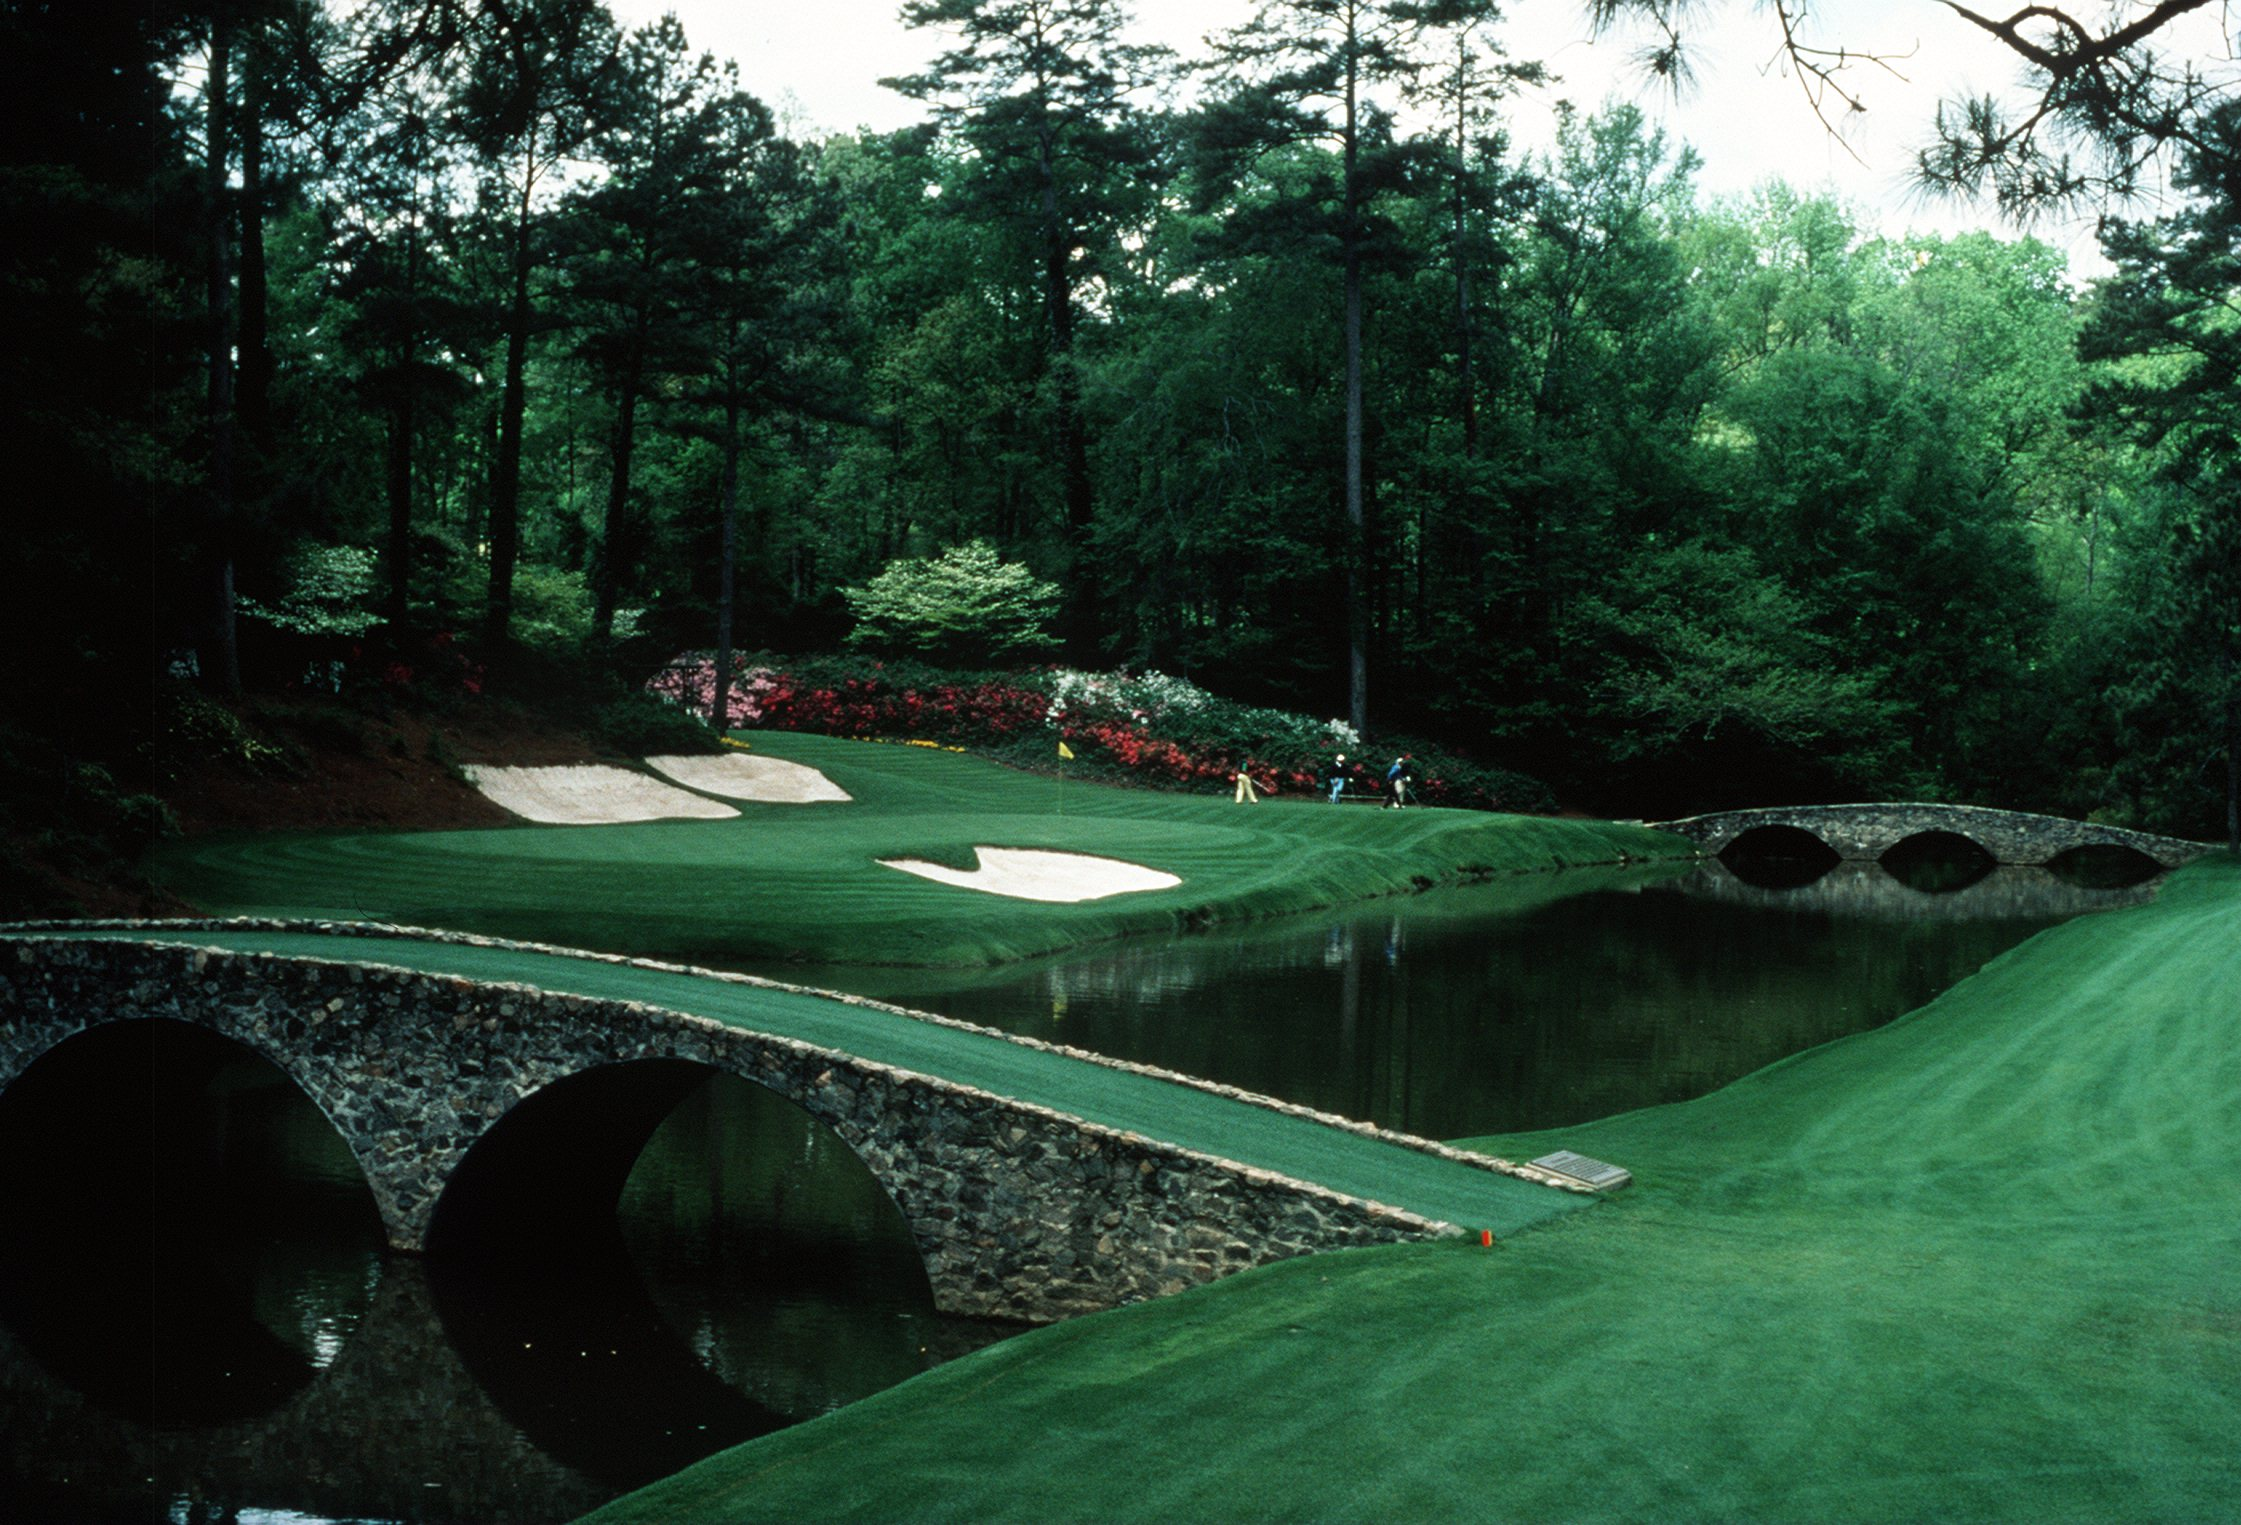 A SCENIC VIEW OF THE INFAMOUS AMEN CORNER OF THE PAR 3 12TH HOLE DURING THE 1992 MASTERS TOURNAMENT AT THE AUGUSTA NATIONAL GOLF COURSE IN AUGUSTA, GEORGIA.